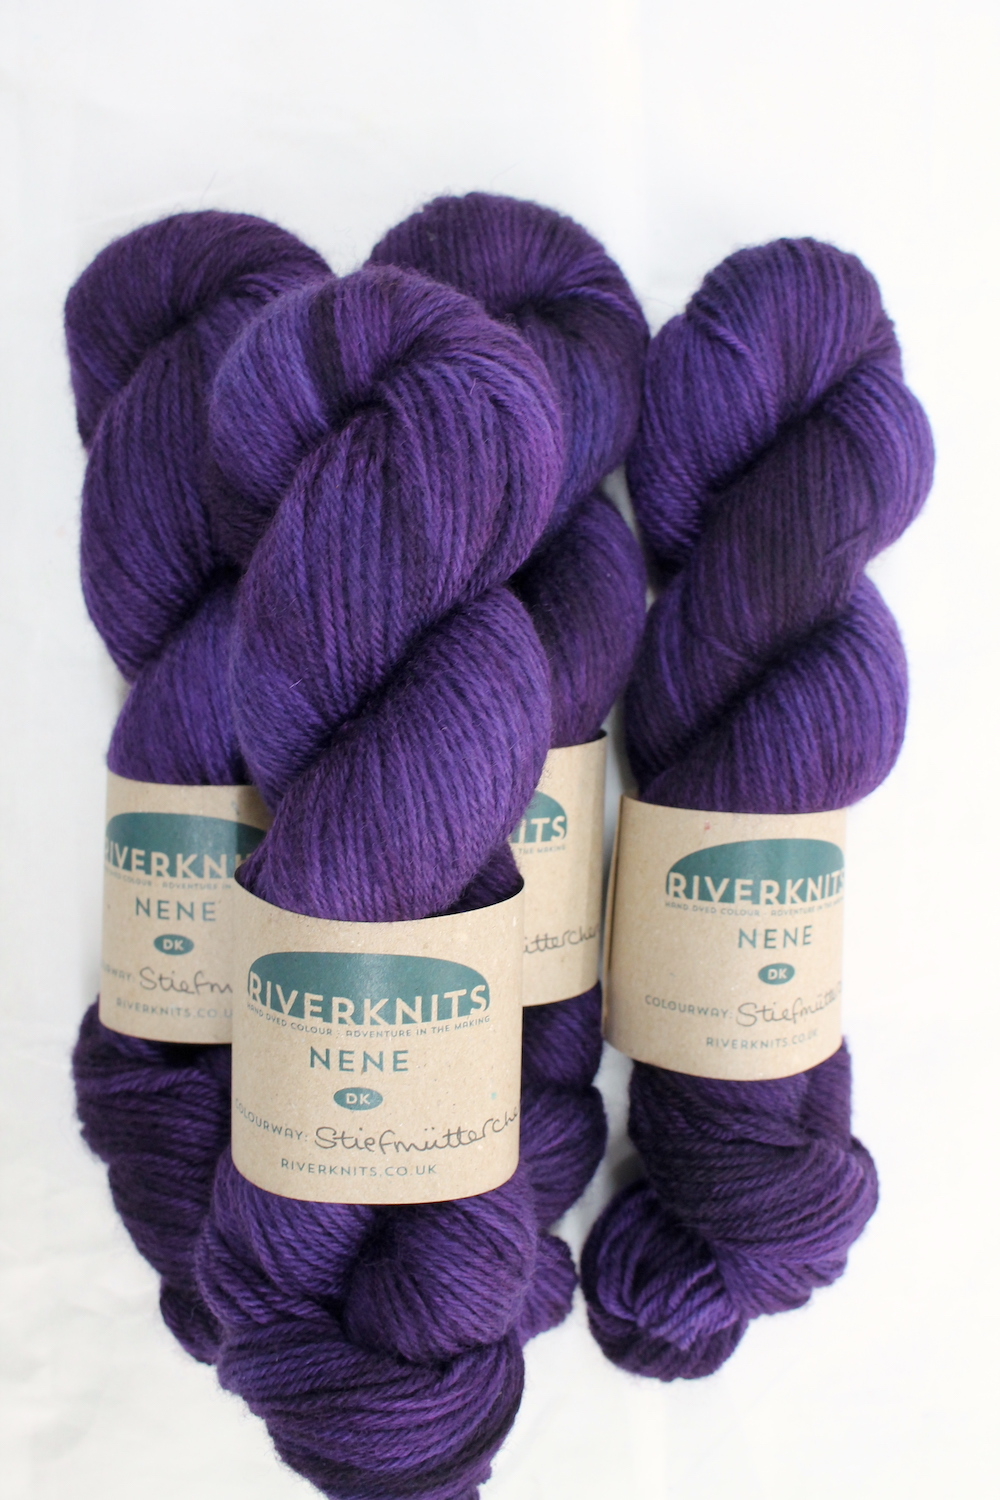 A pile of skeins of Nene DK in deep purple